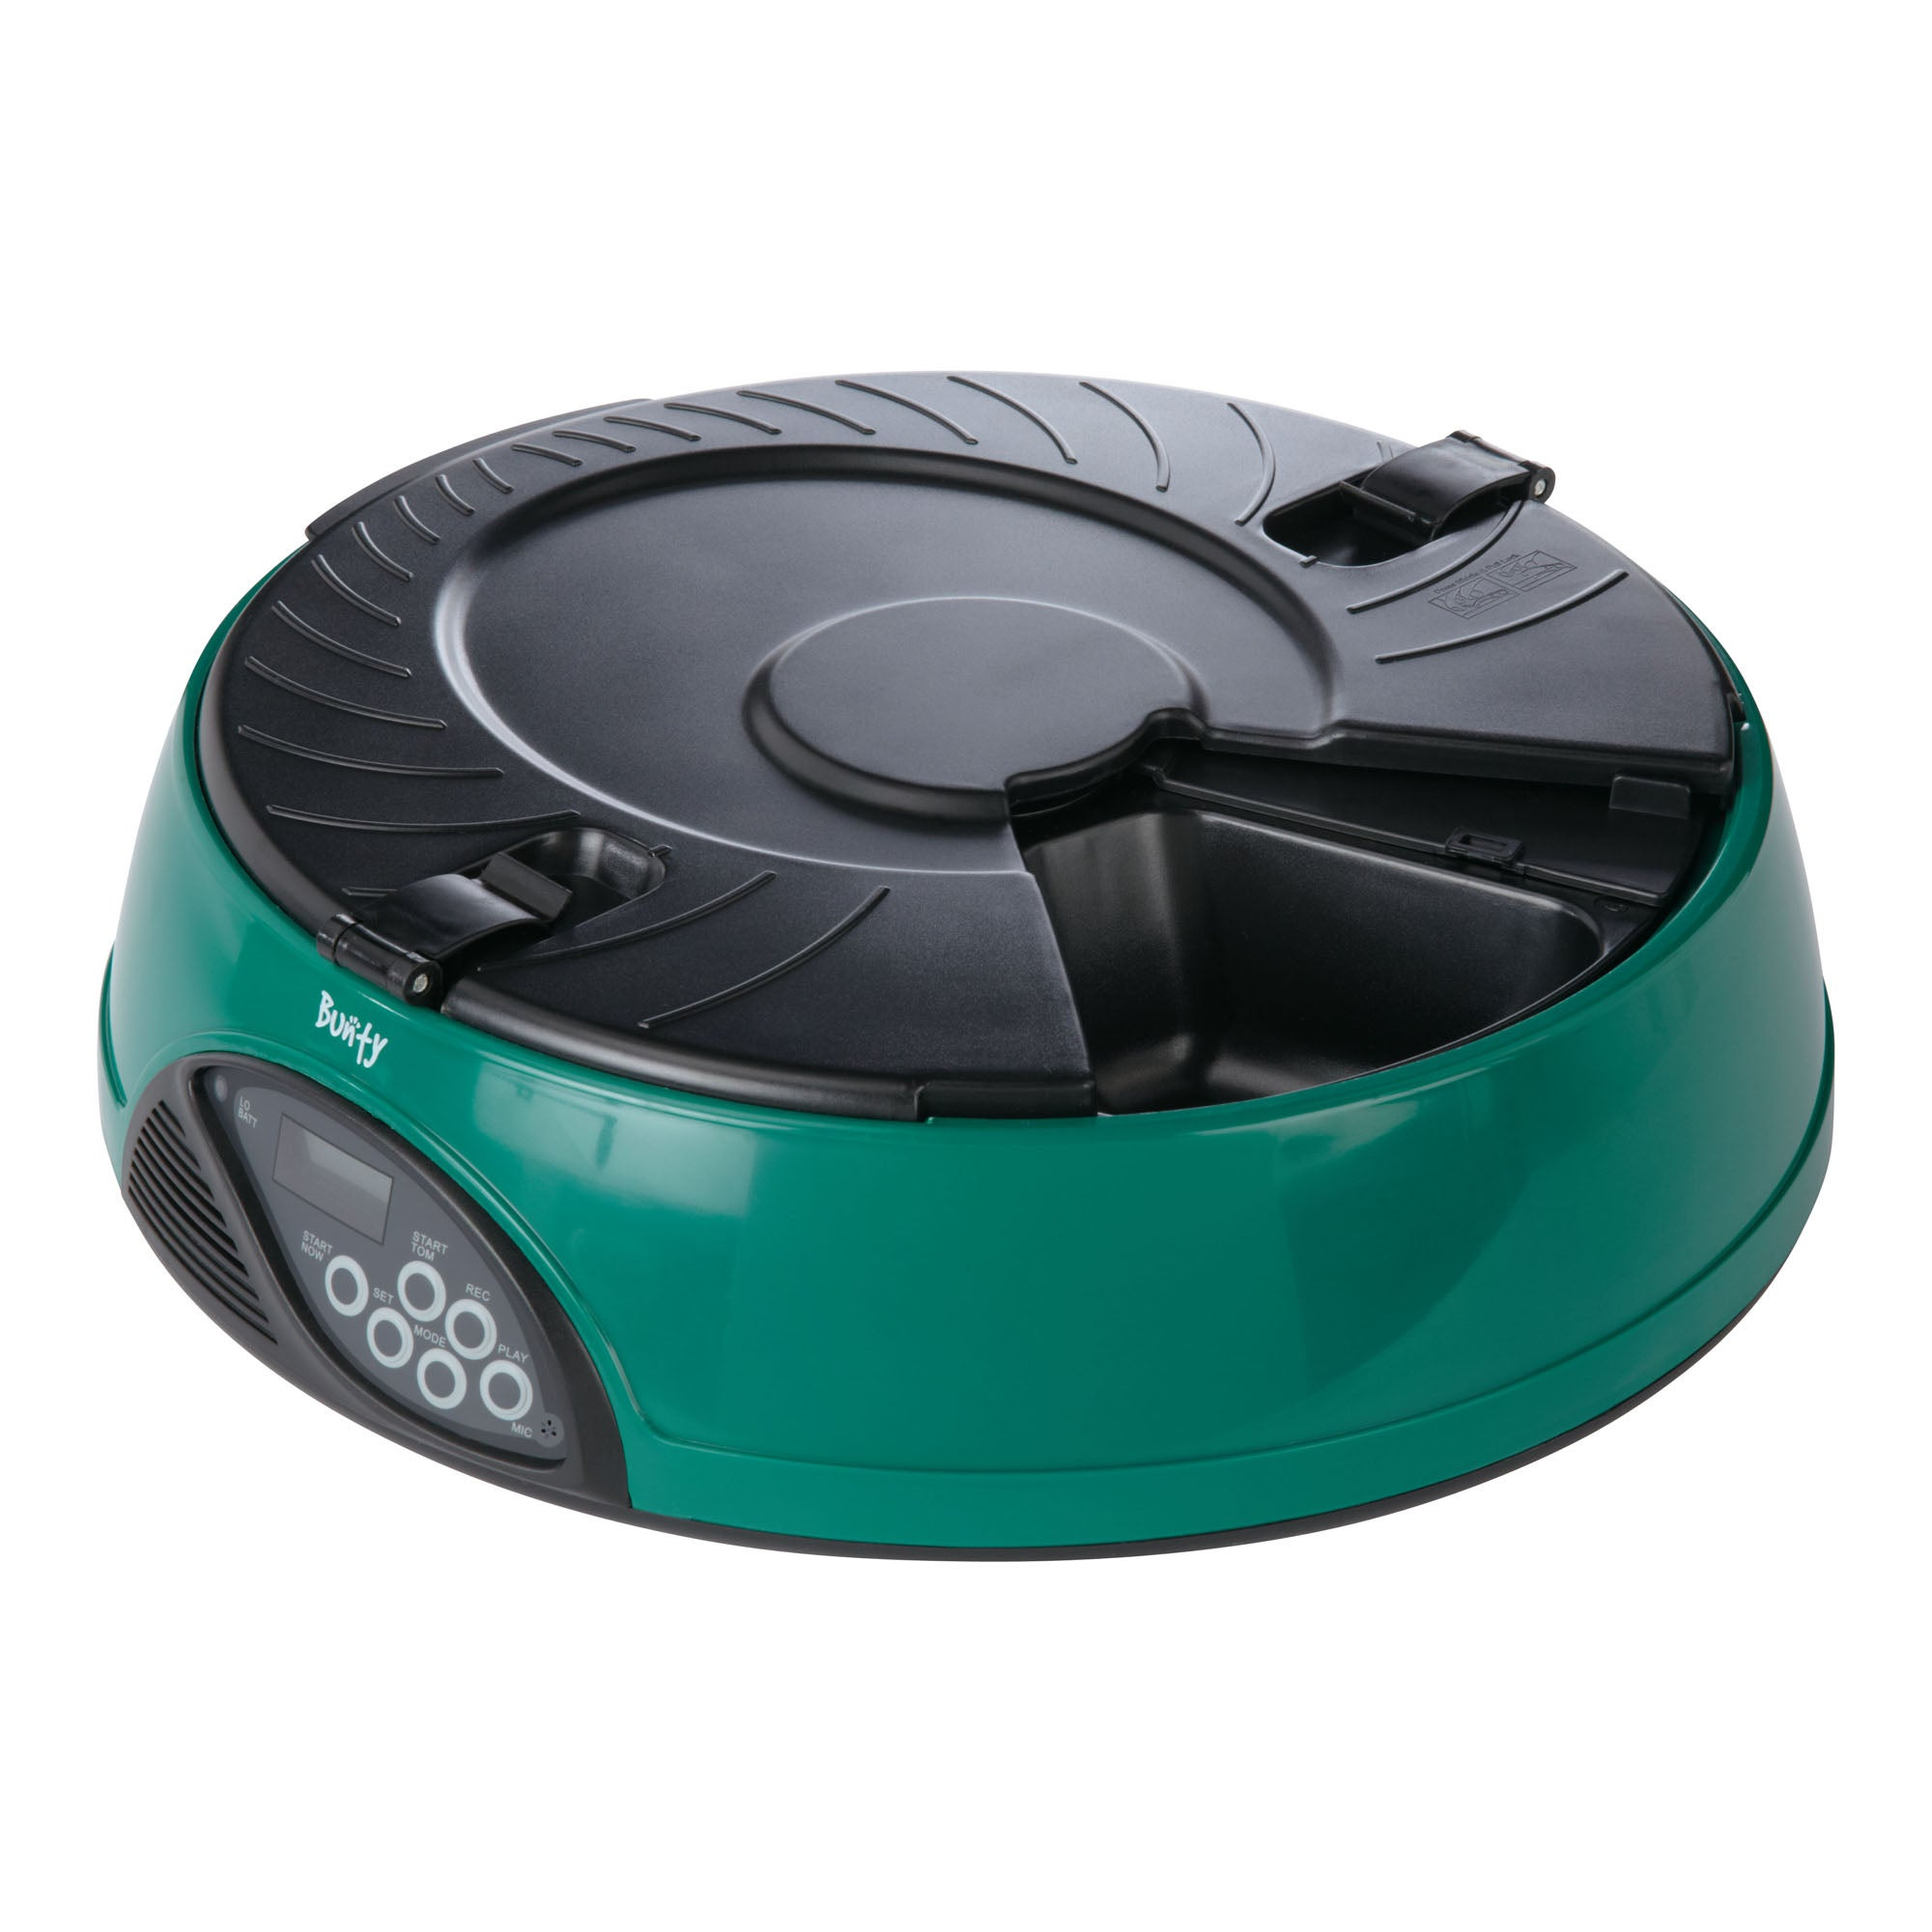 Bunty Green Automatic Pet Meal Dispenser Green and Black